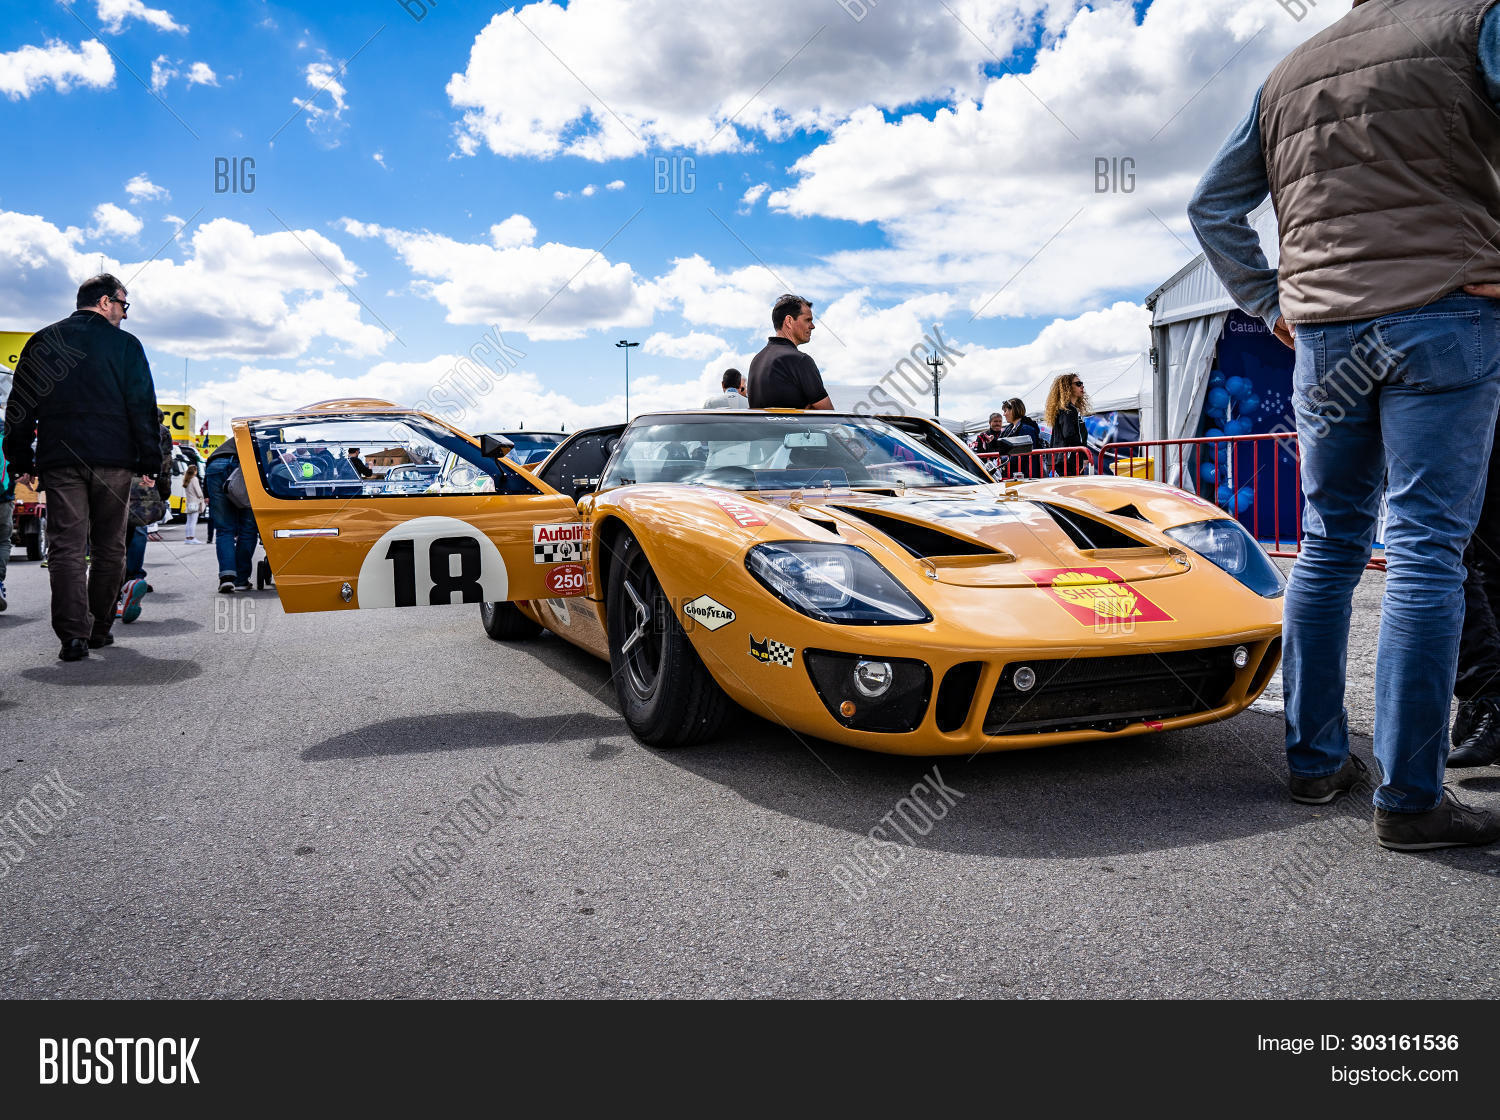 April 2019 Ford Gt 40 Image Photo Free Trial Bigstock